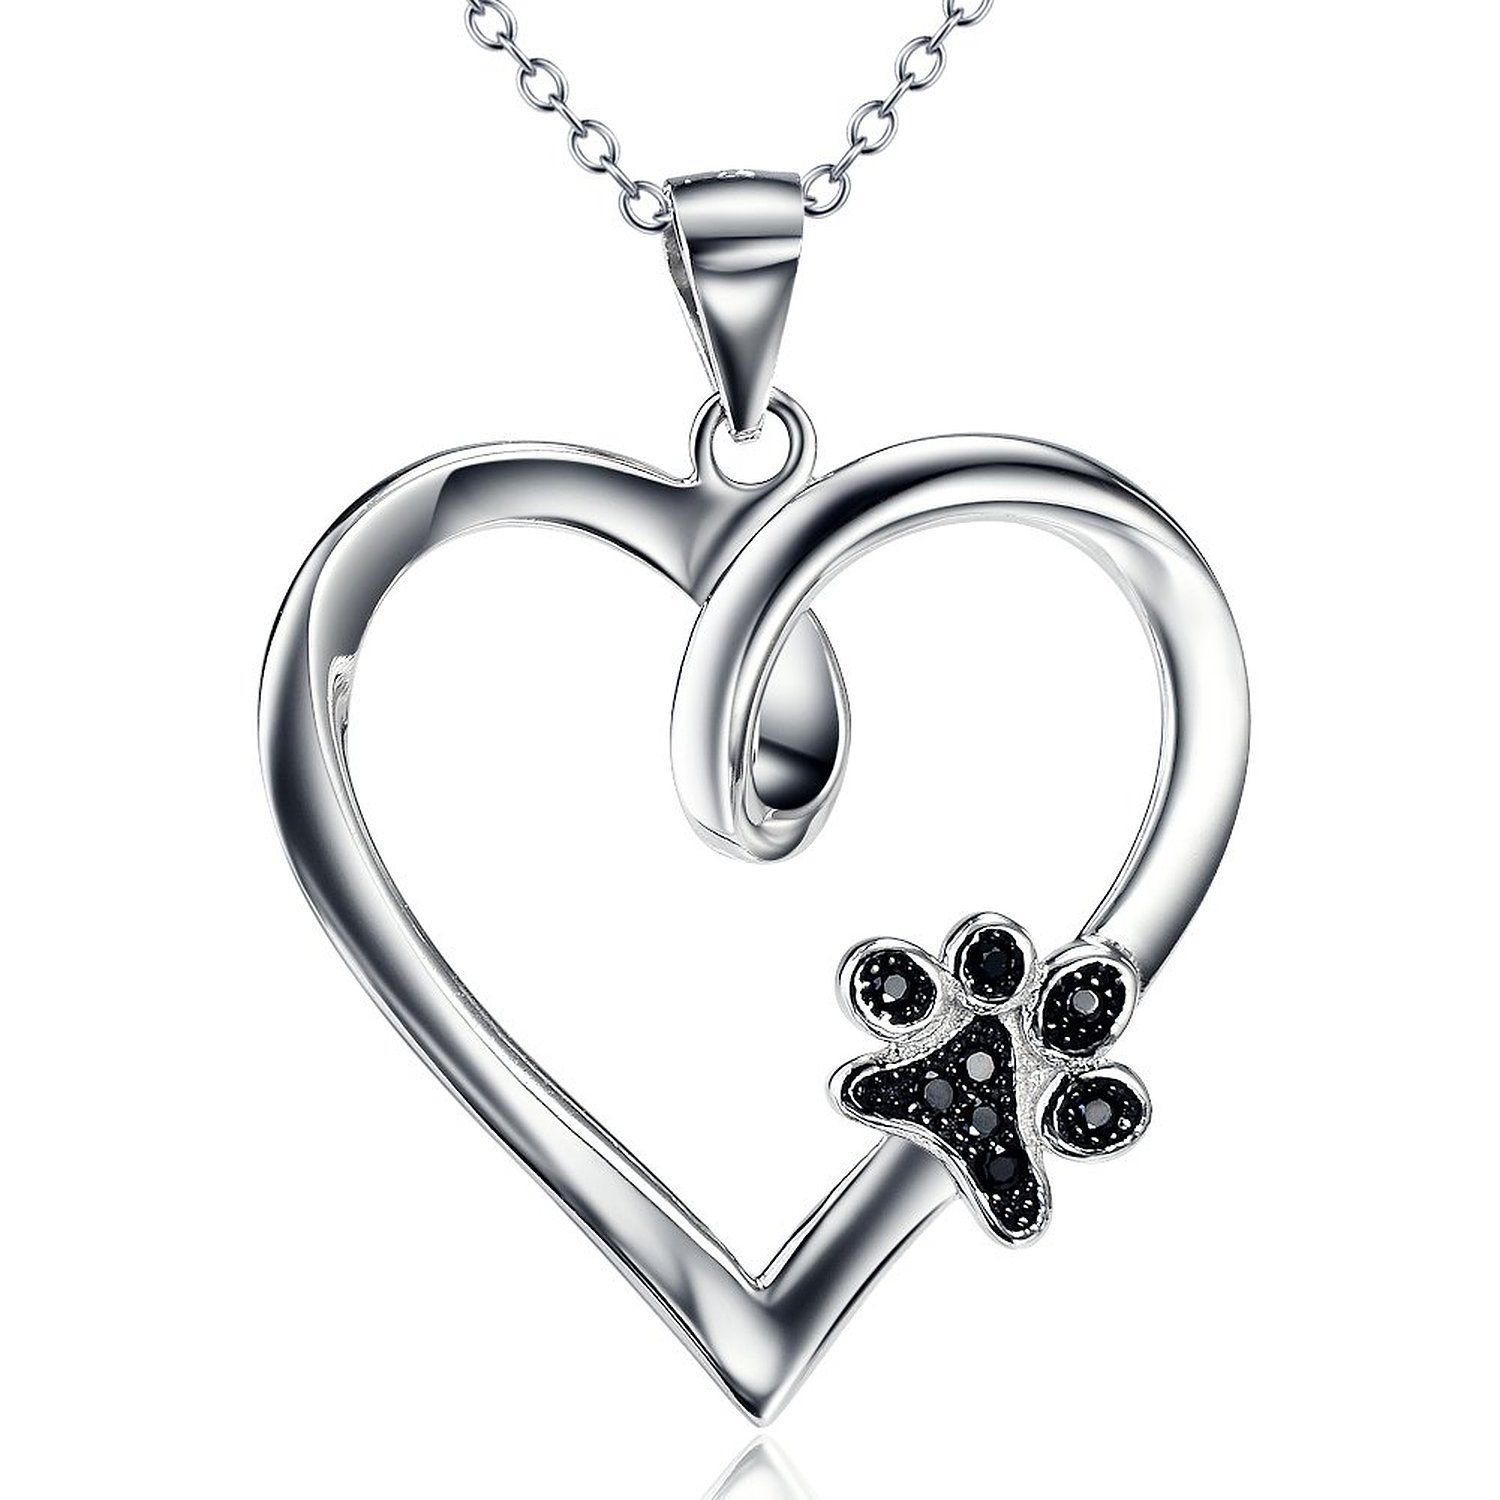 Silver Mountain 925 Sterling Silver Pet Paw Print Heart Cubic Zirconia Pendant Necklace, 18